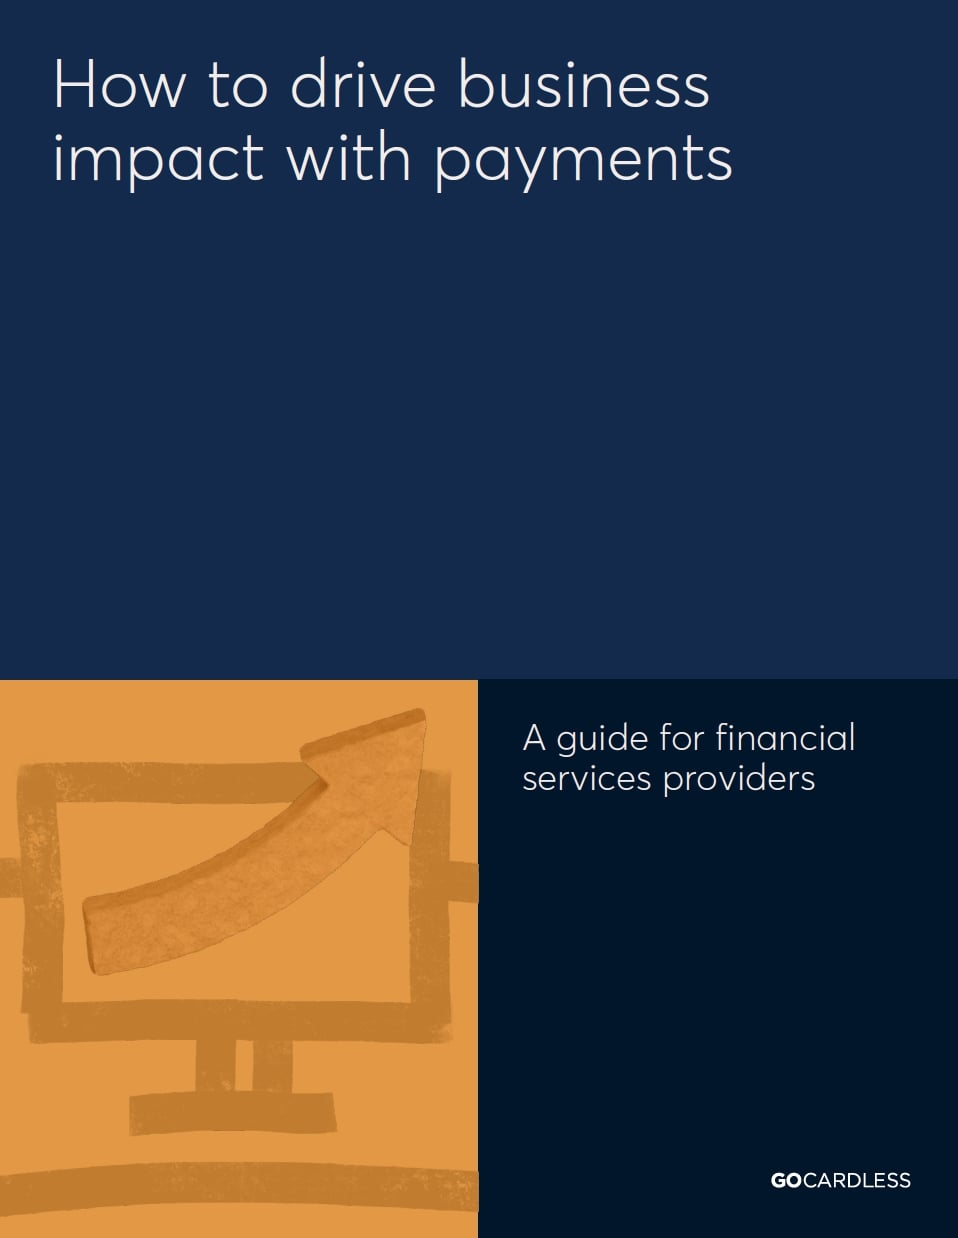 How to drive business impact with payments